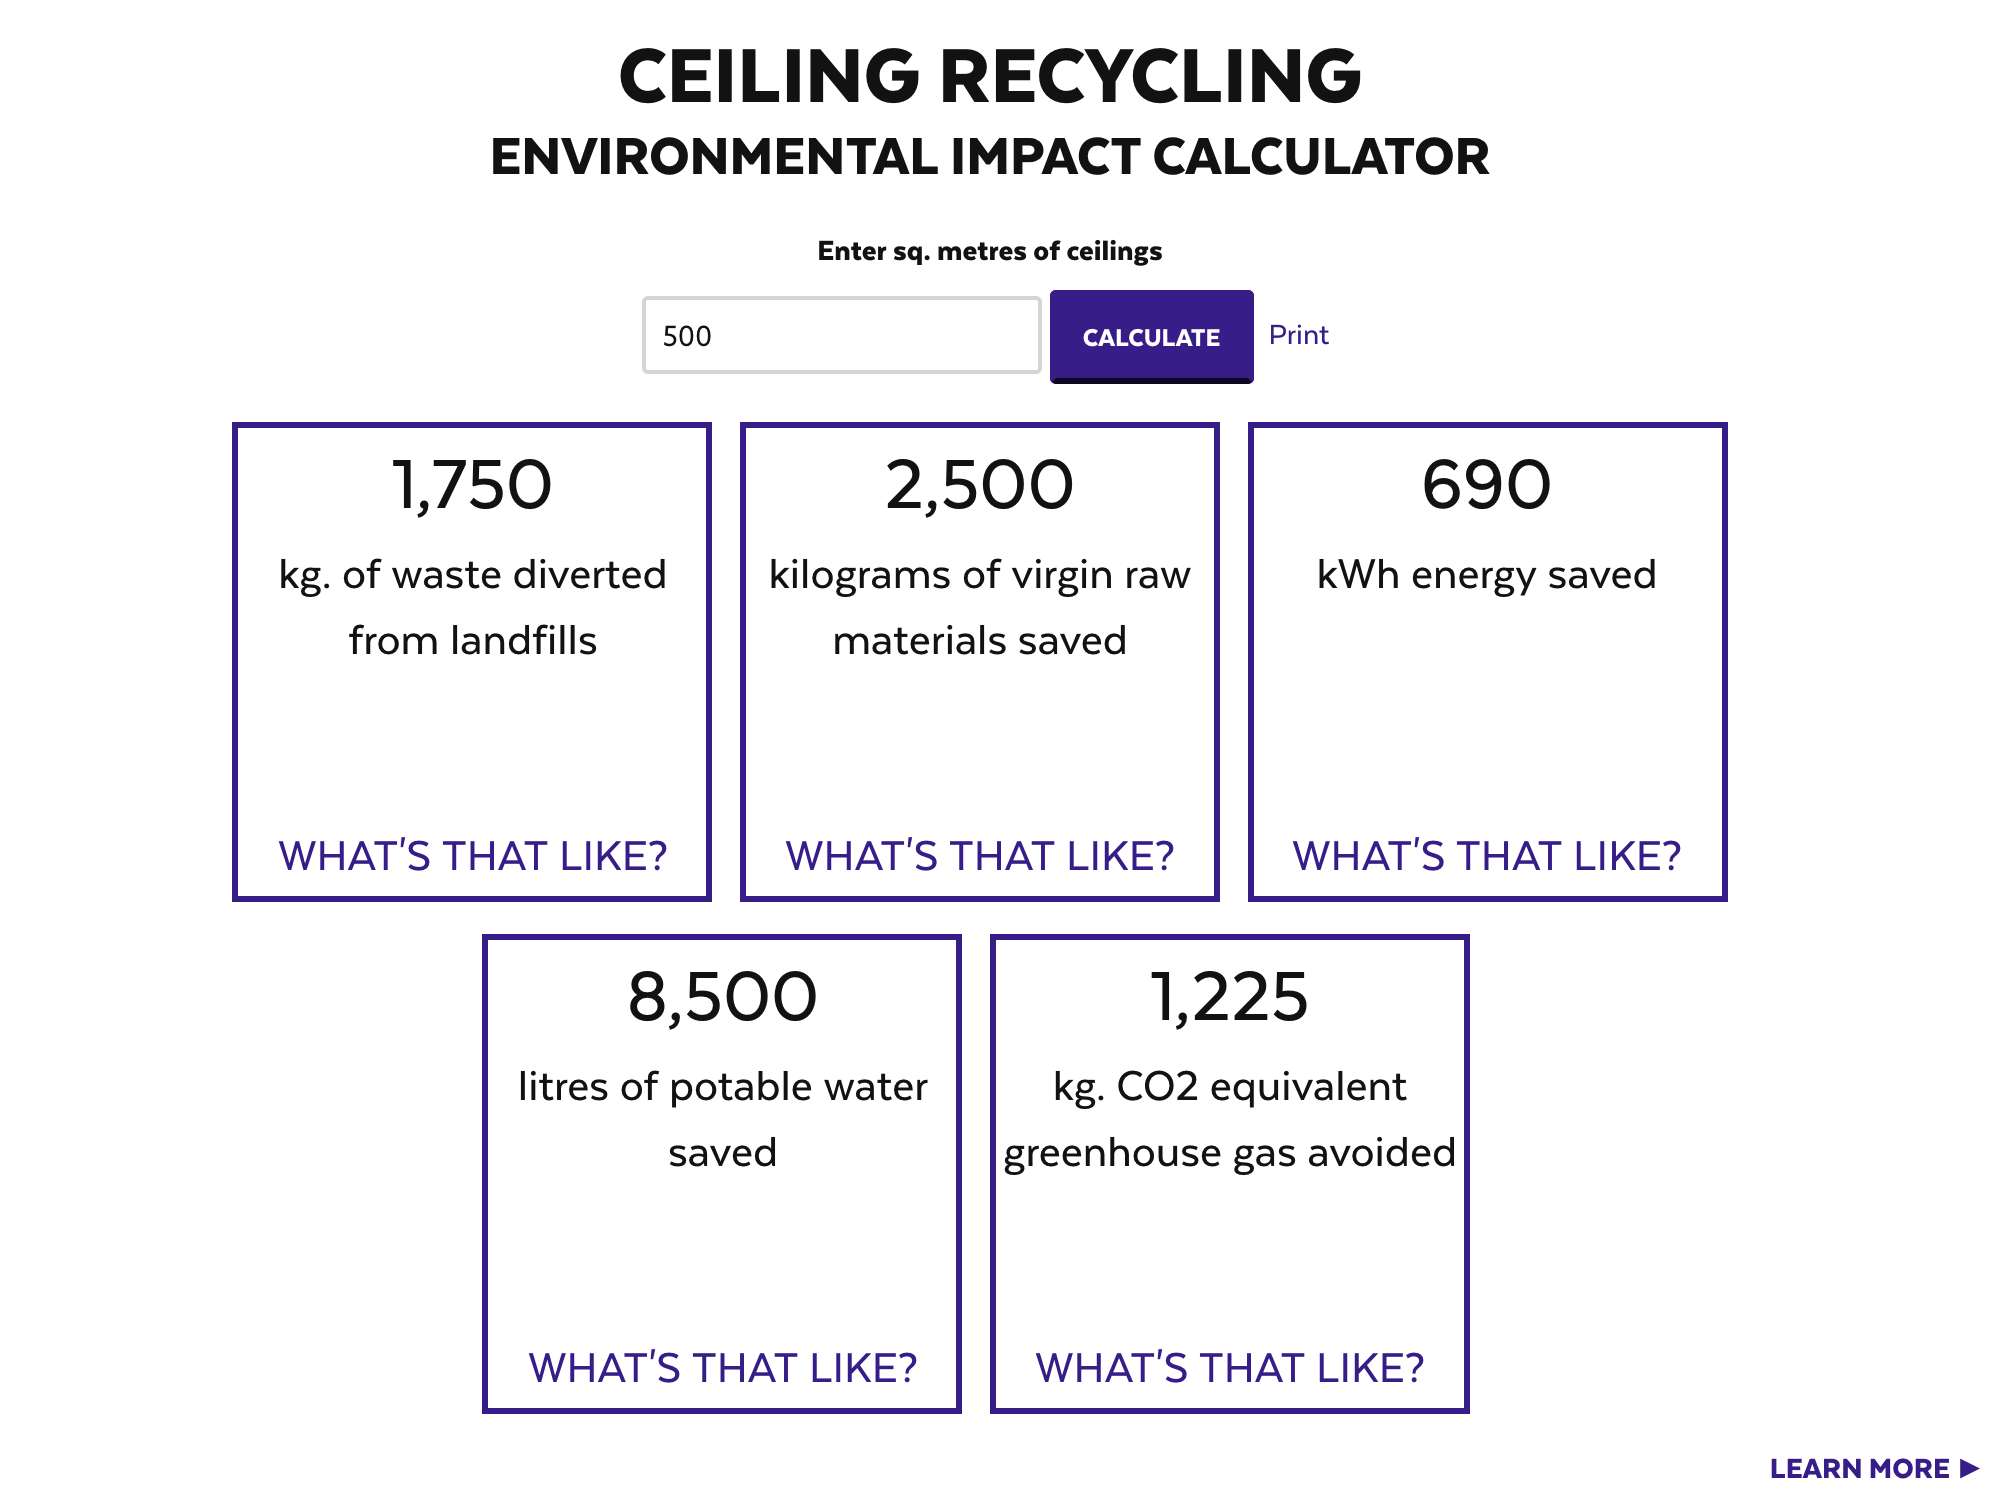 Have You Tried Our Ceiling Recycling Environmental Impact Calculator